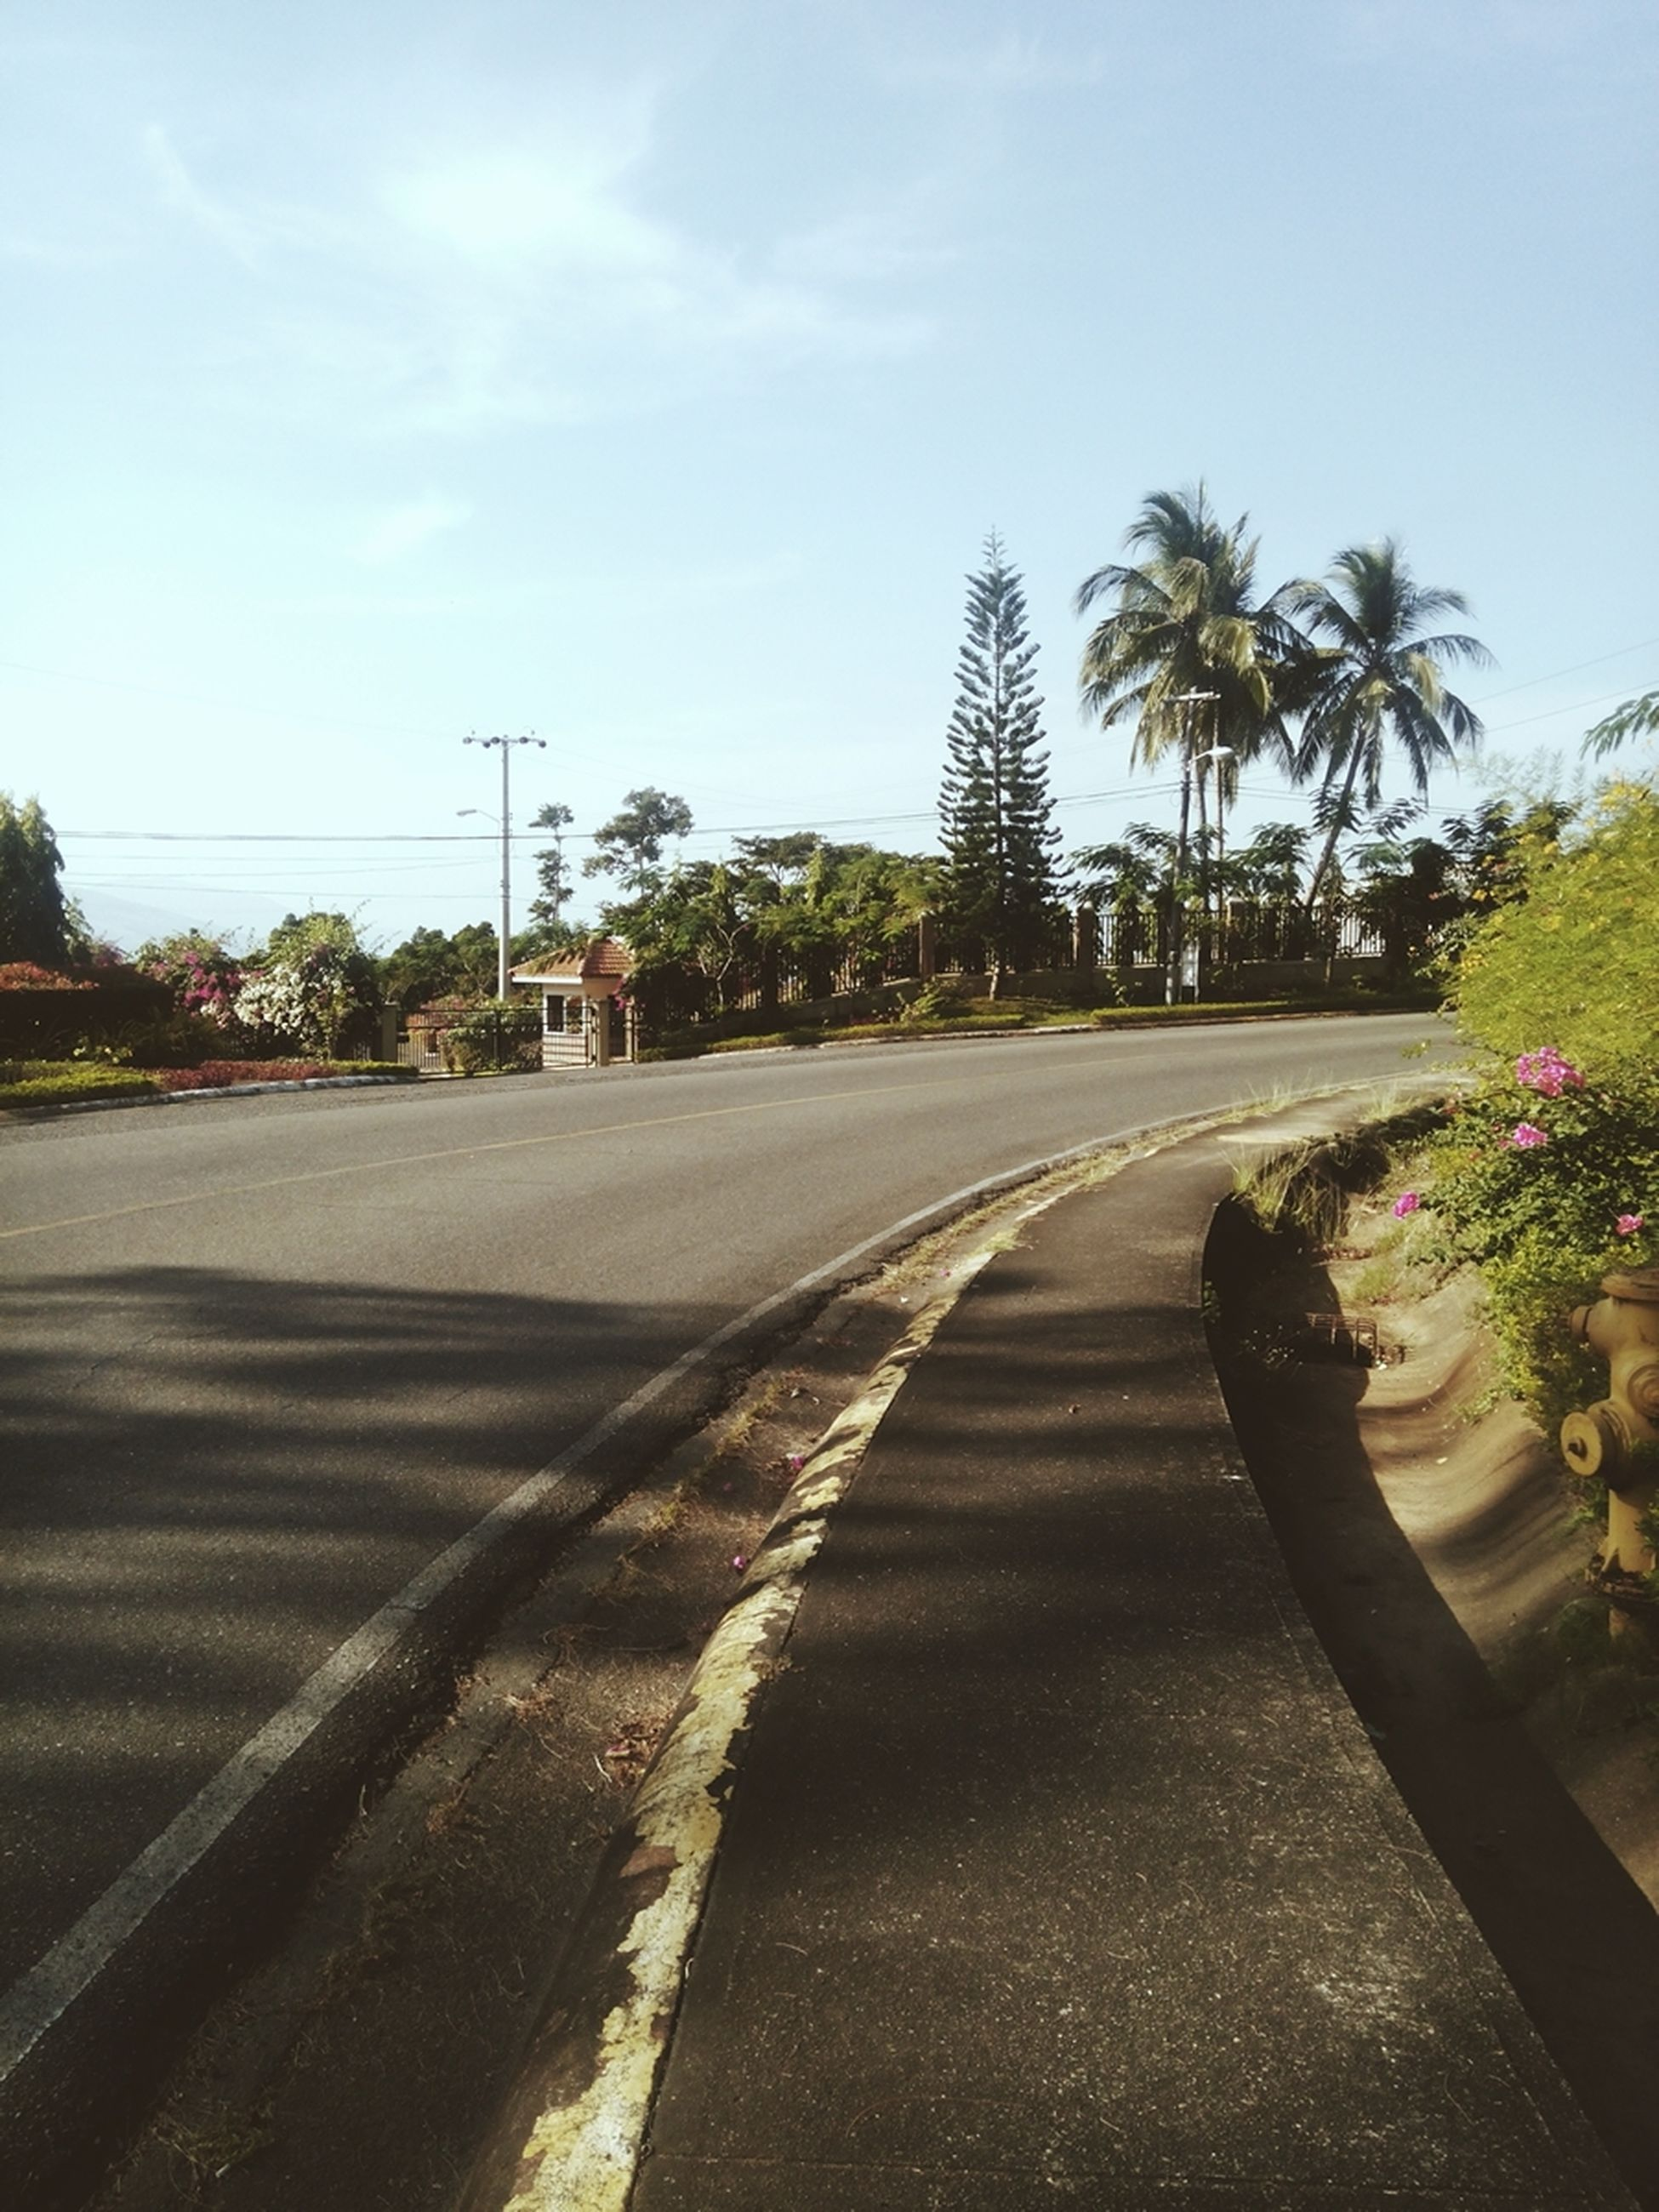 tree, palm tree, road, sky, transportation, the way forward, street, sunlight, growth, tranquility, shadow, tranquil scene, car, nature, day, land vehicle, diminishing perspective, outdoors, clear sky, incidental people